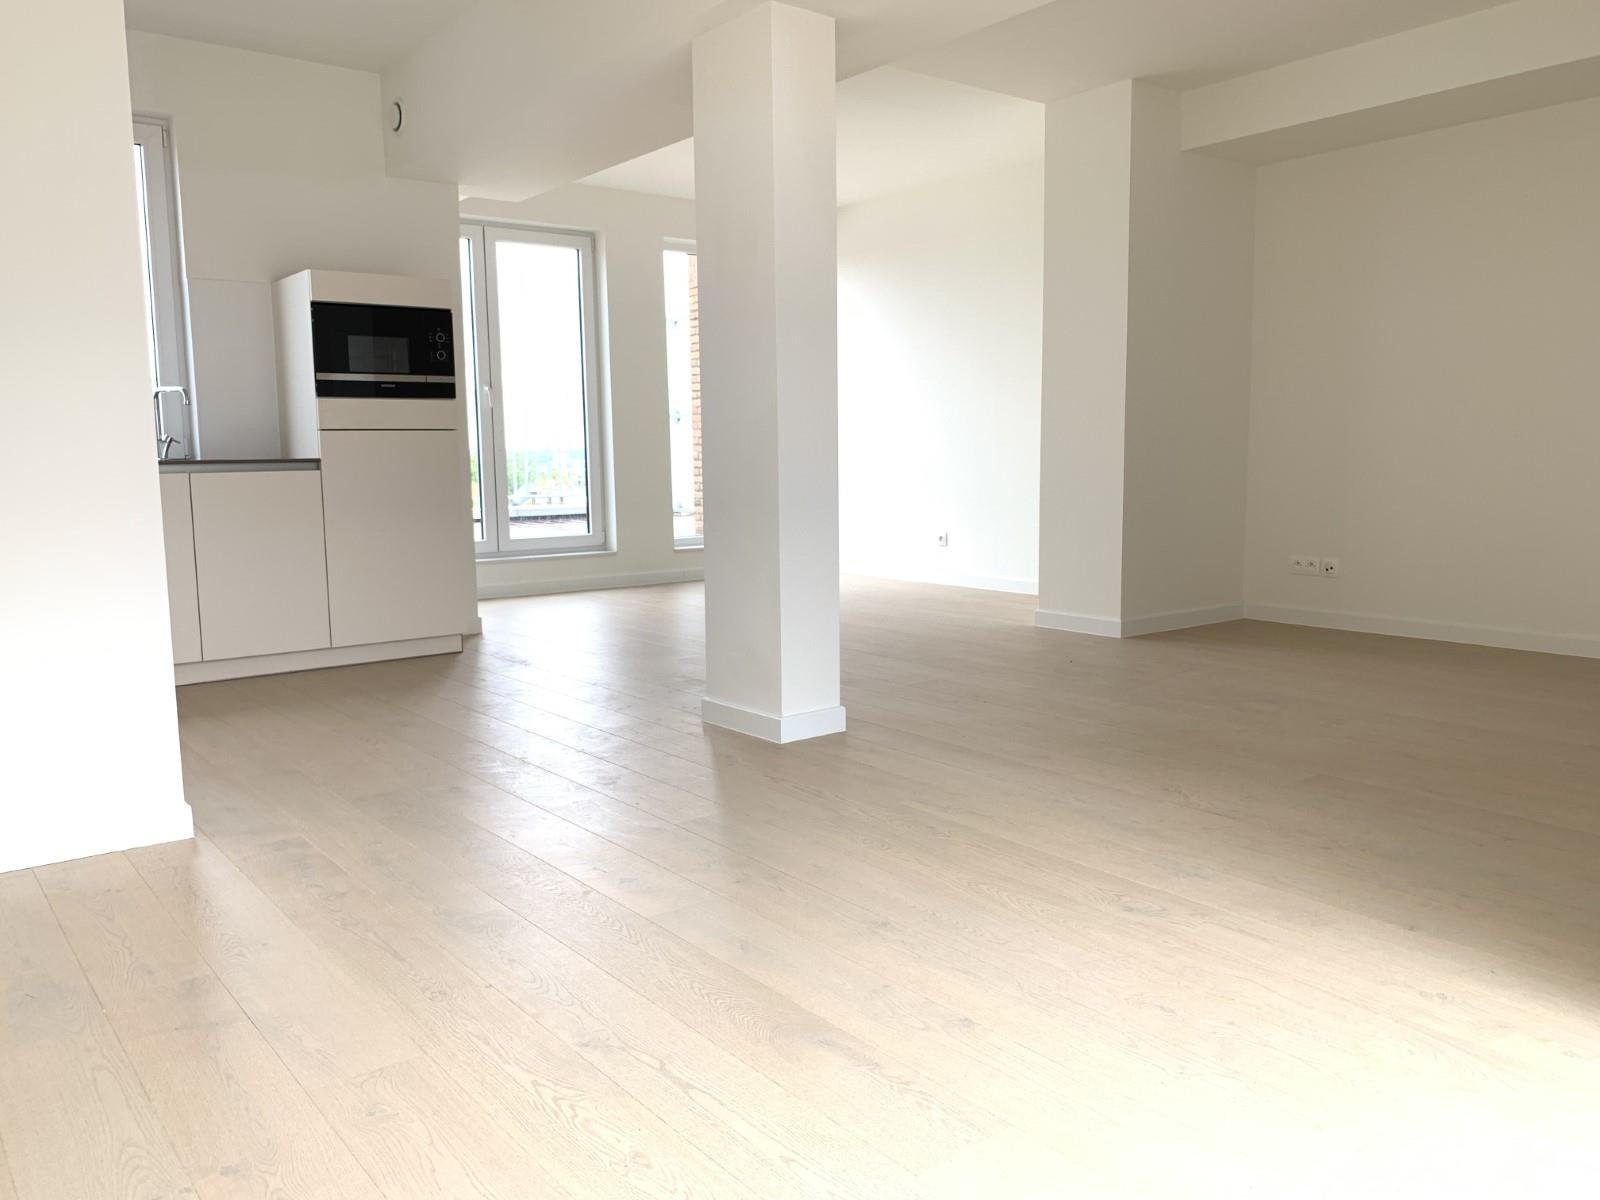 Appartement exceptionnel - Schaerbeek - #3964914-14